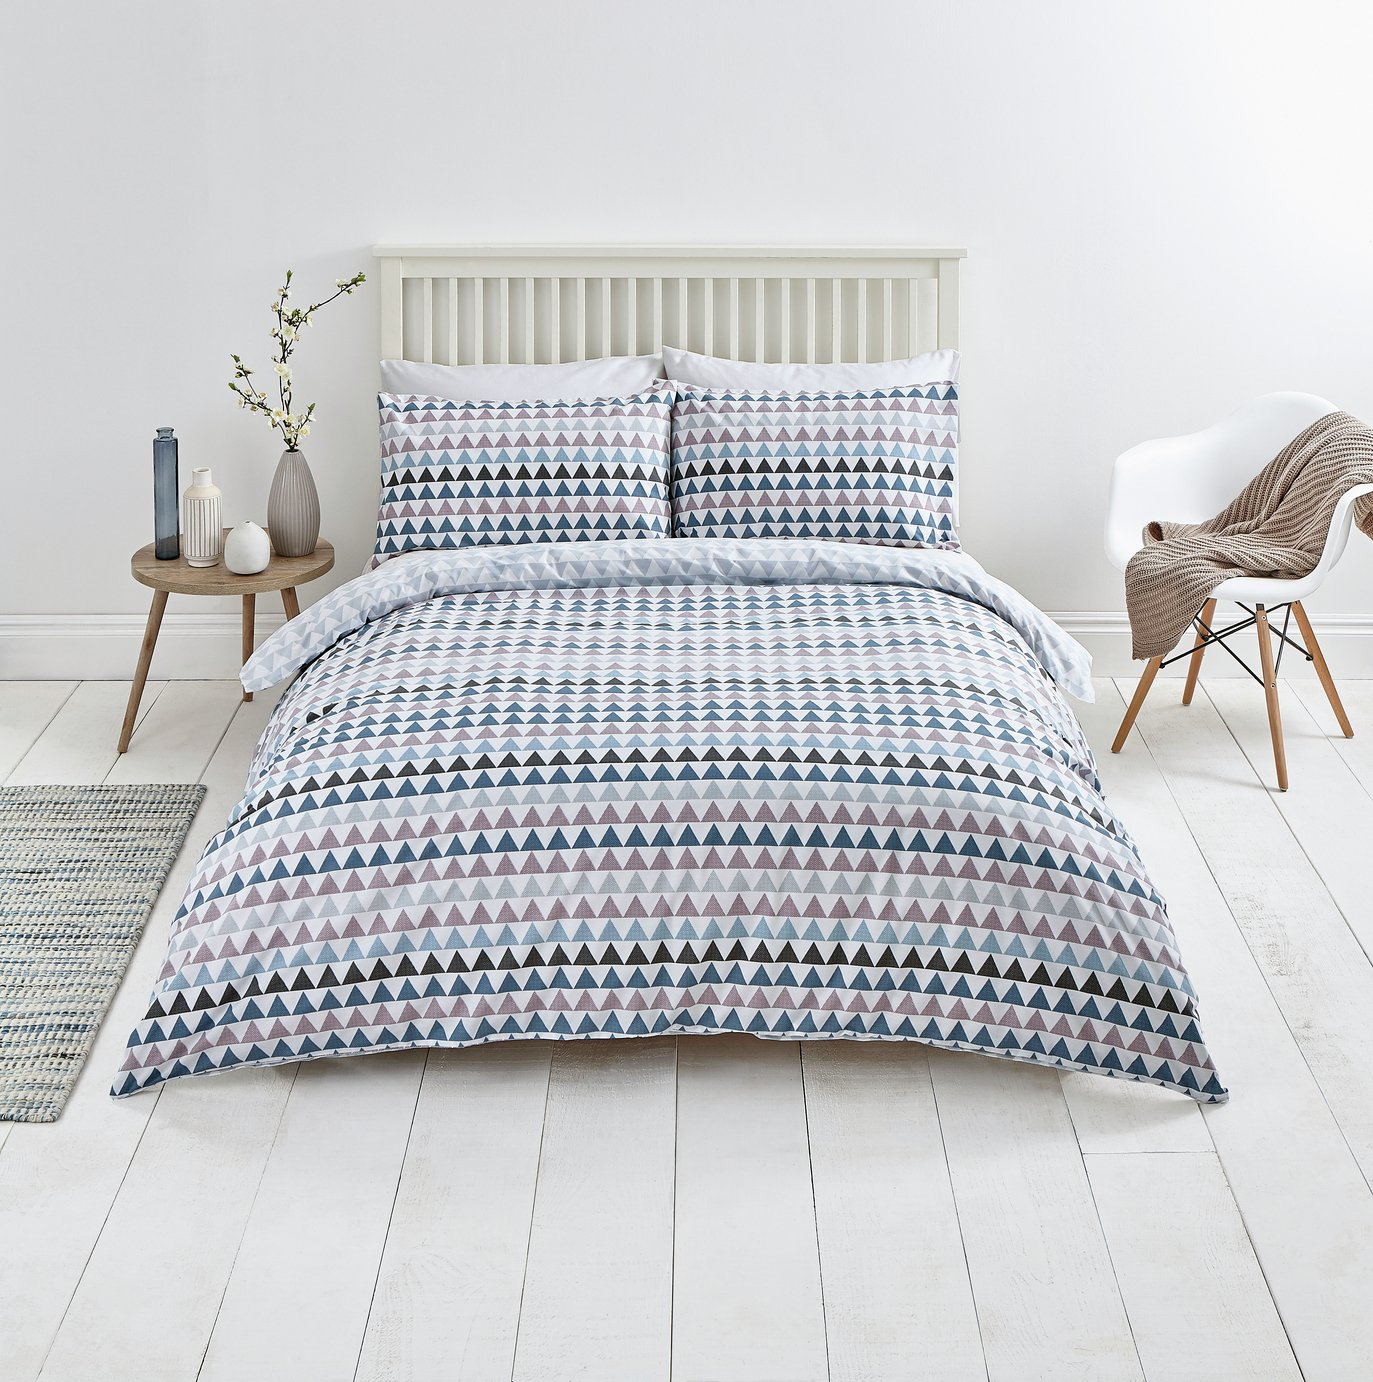 Sainsbury's Home Nordic Skies Bedding Set - Single